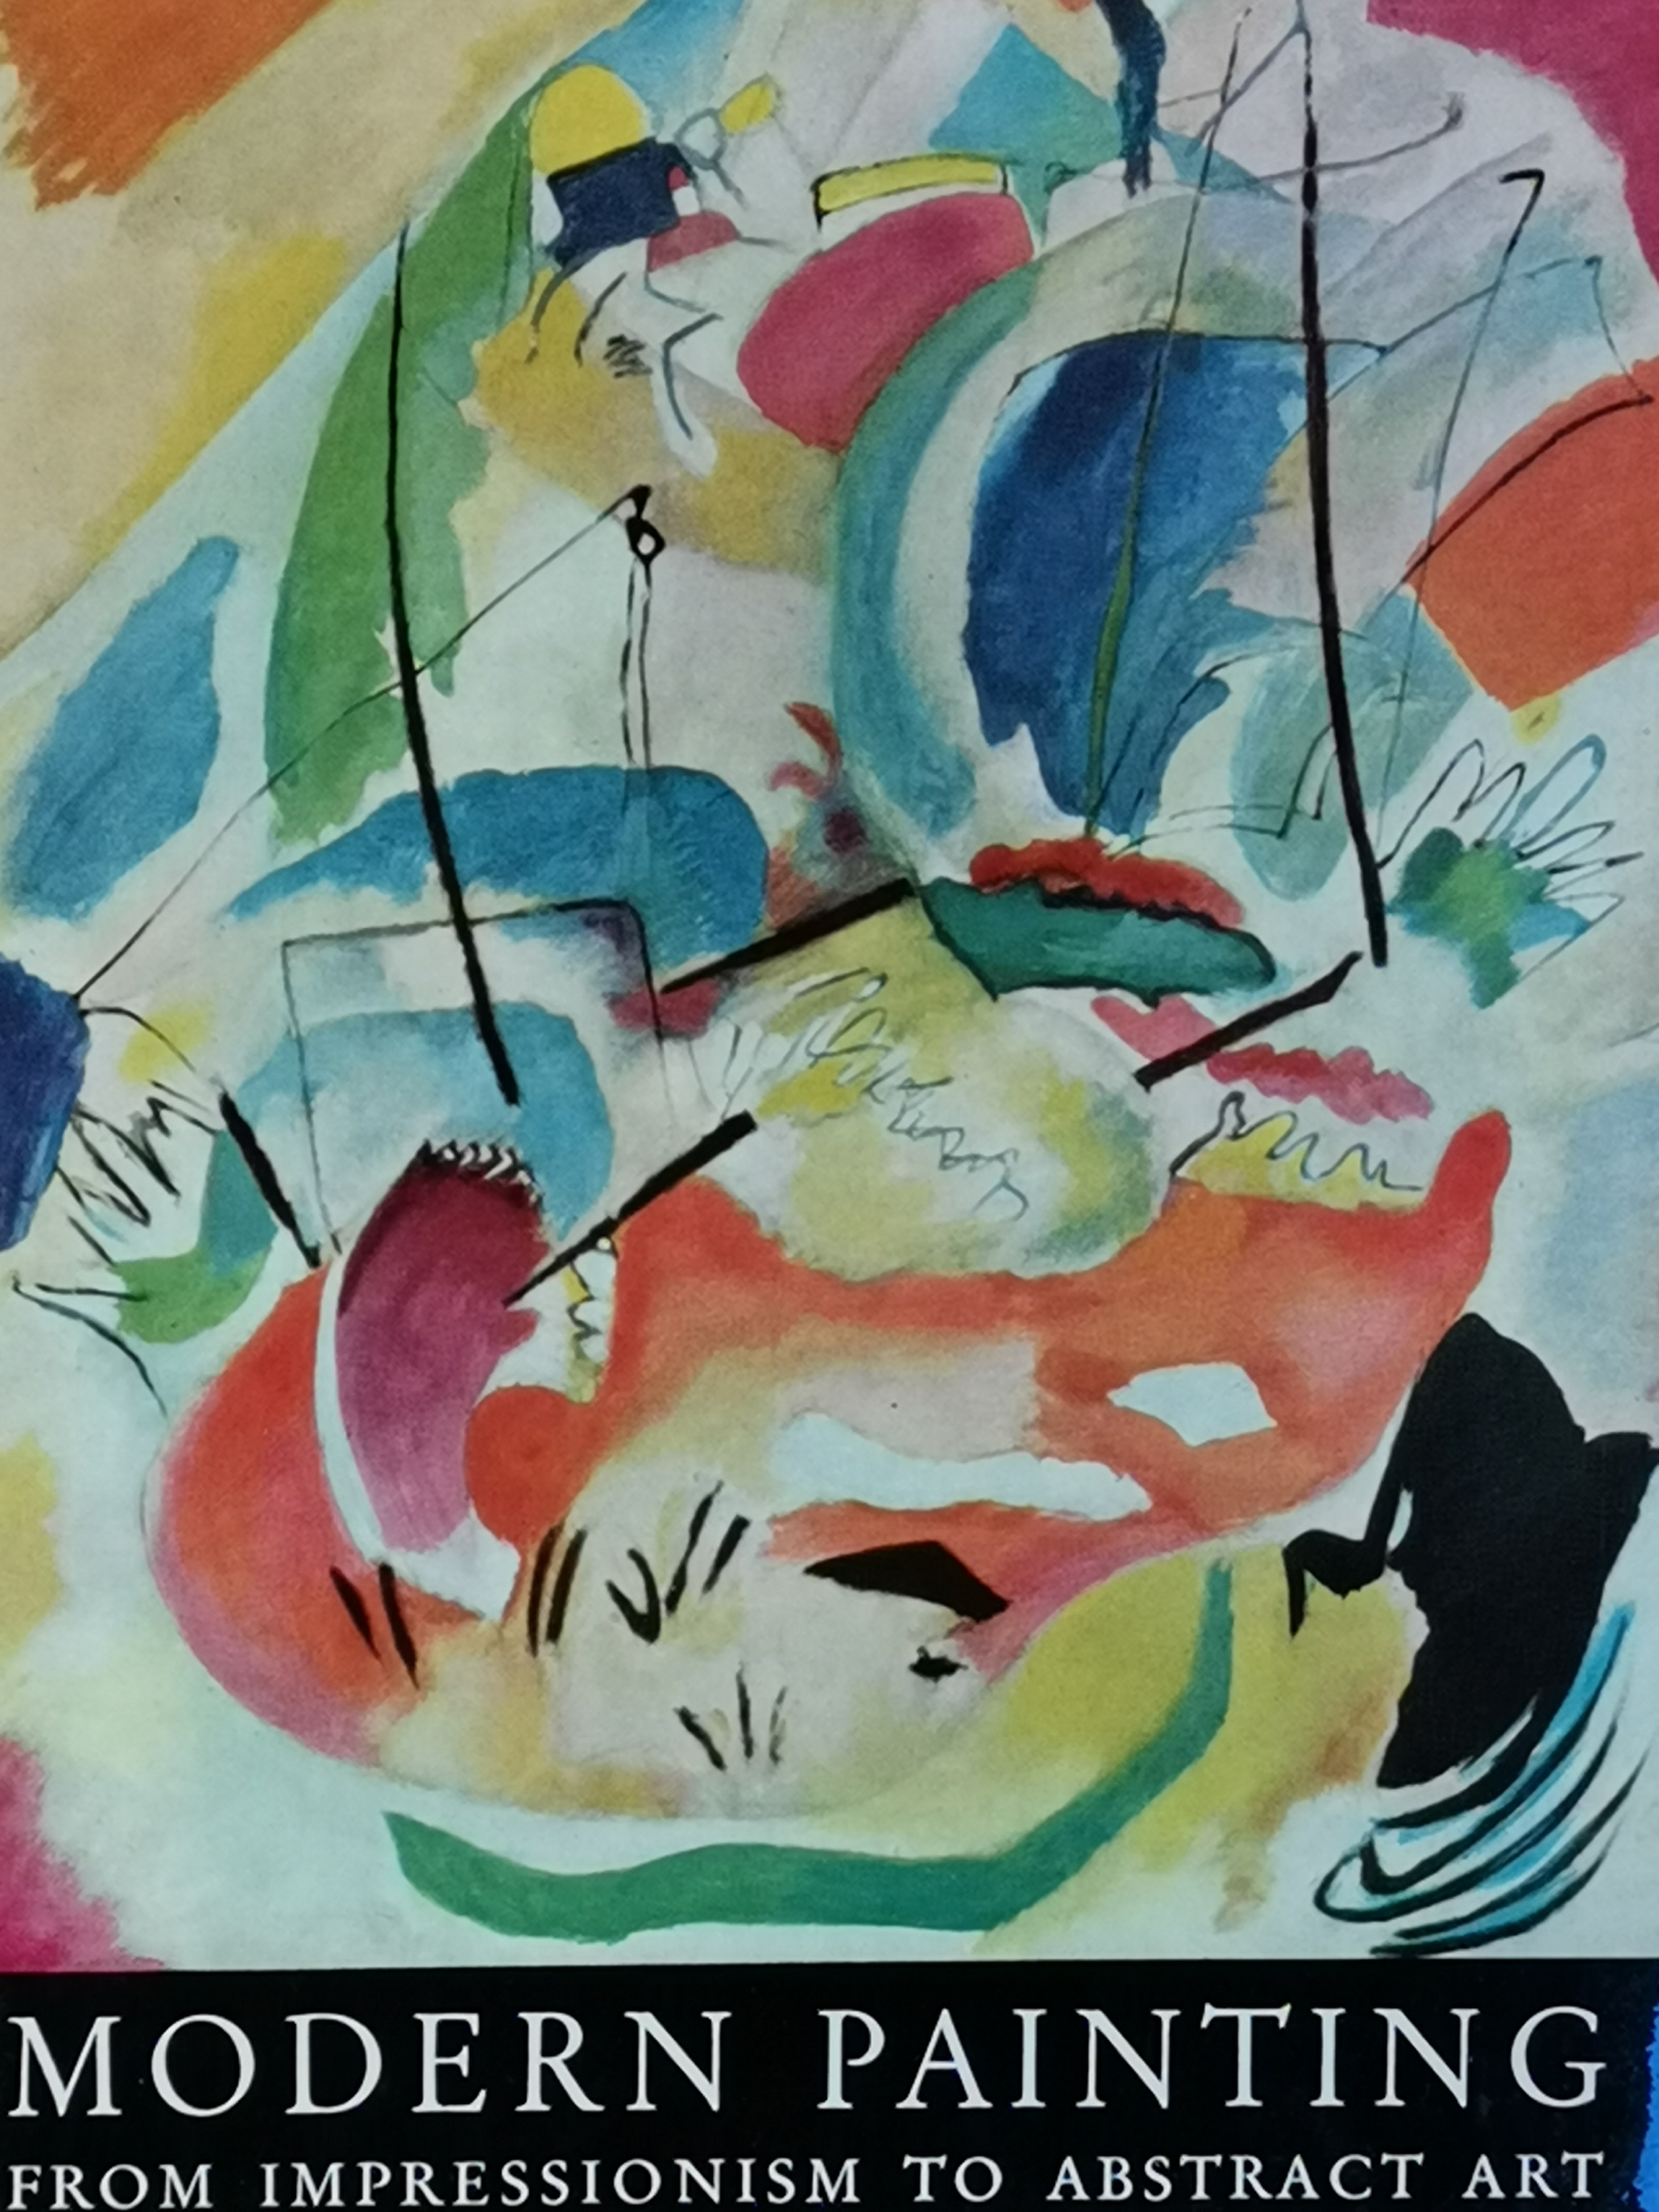 Modern Painting - From Impressionism to Abstract Art